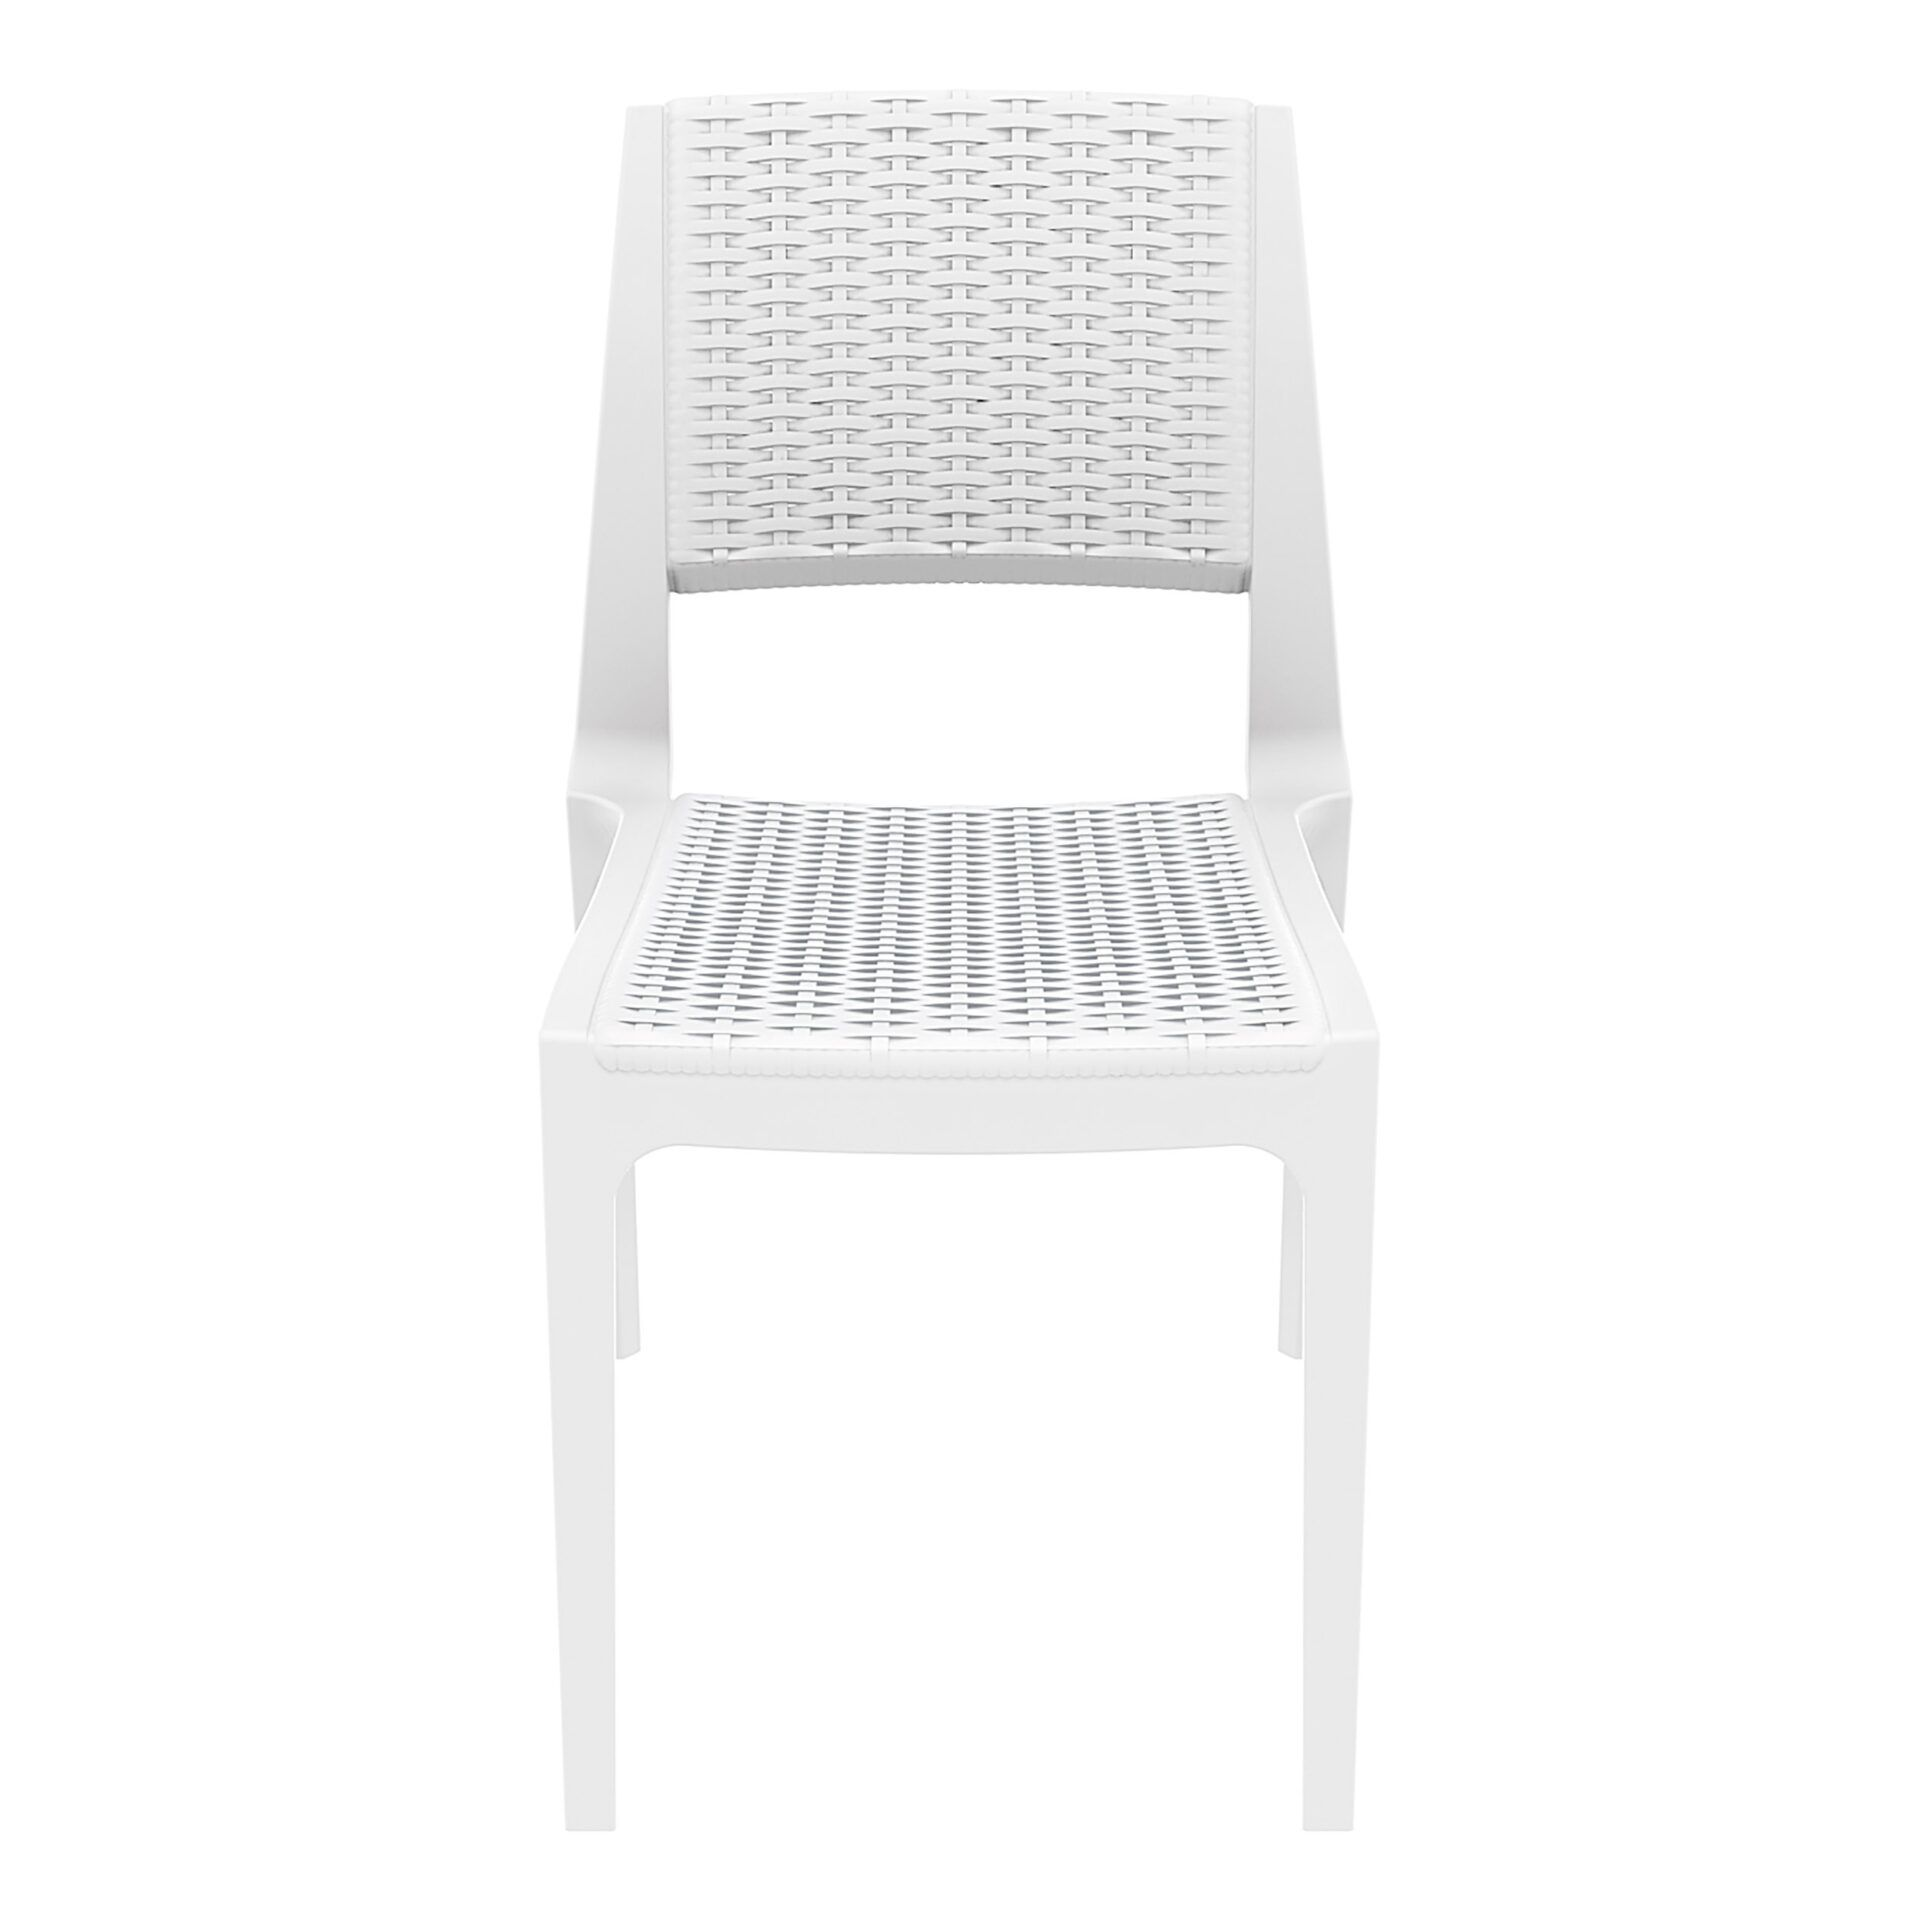 resin rattan outdoor cafe verona chair white front